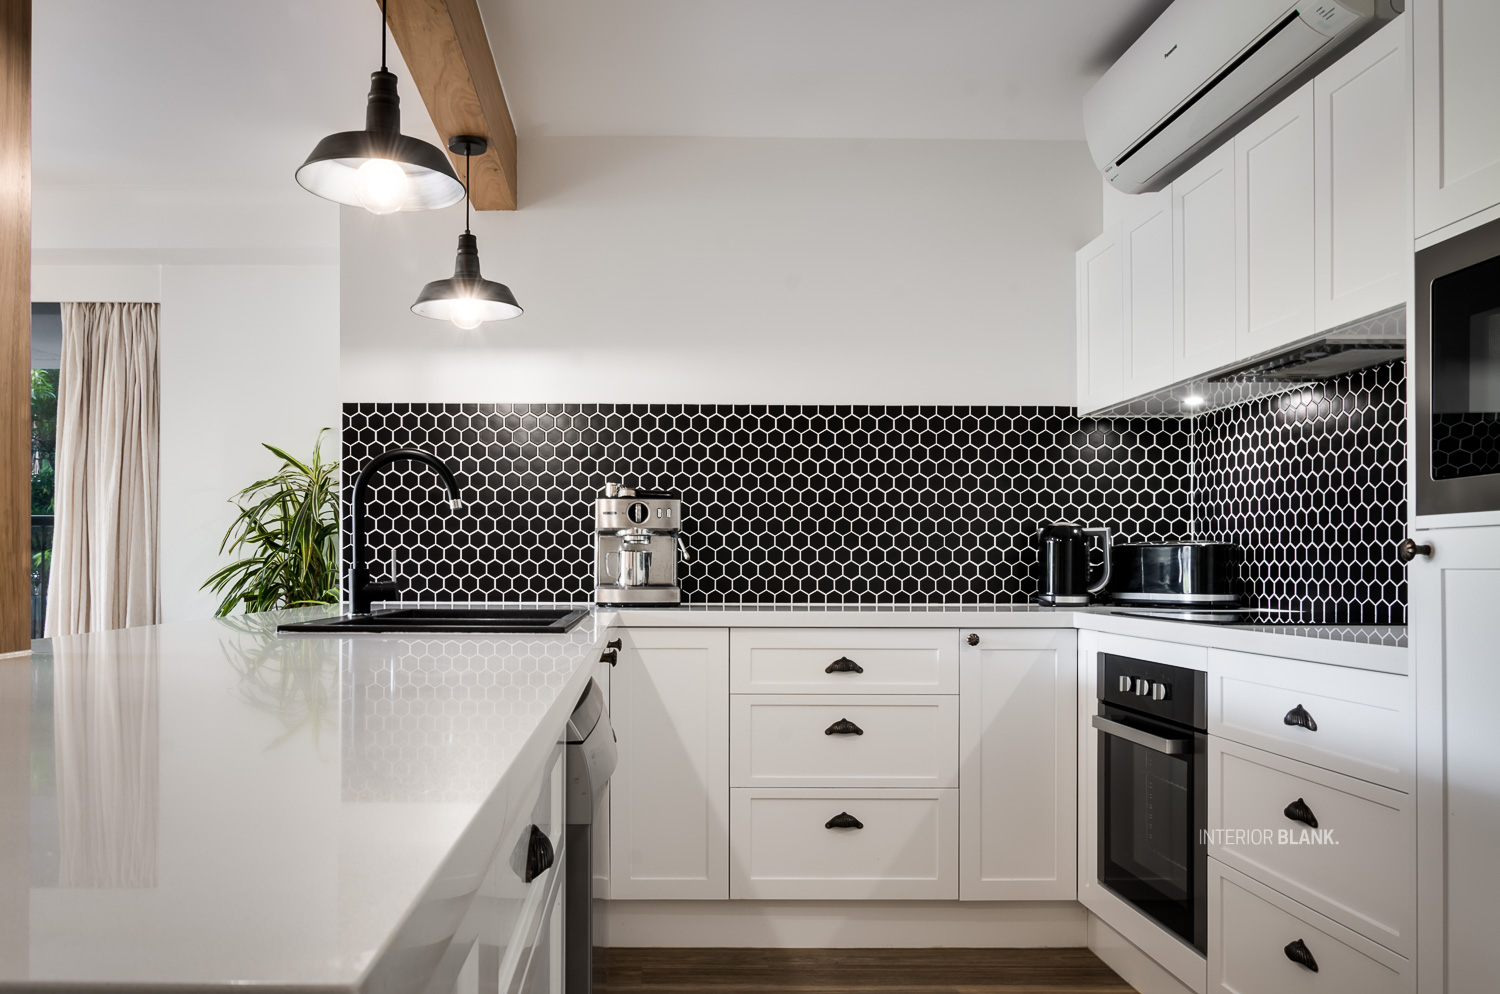 An apartment renovation for an AIRBNB Apartment in Byron Bay, Northern NSW. See the before and after photos of this kitchen.